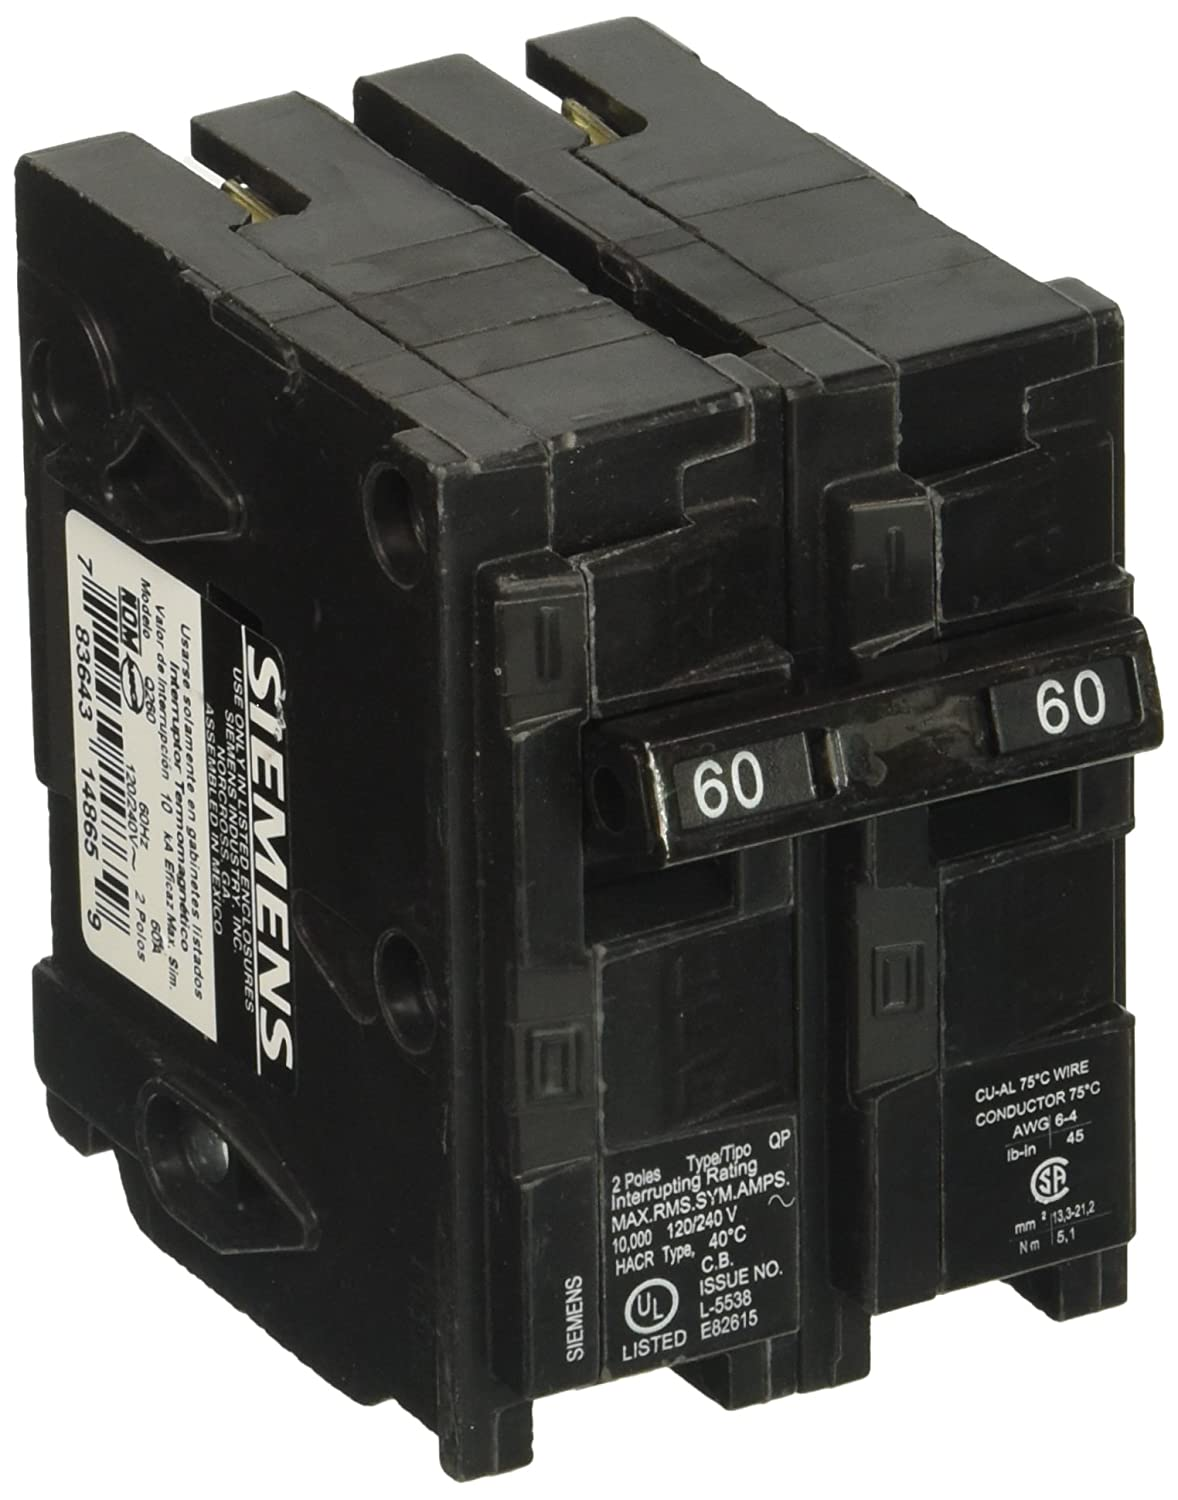 Q260 60-Amp Double Pole Type QP Circuit Breaker - - Amazon.com